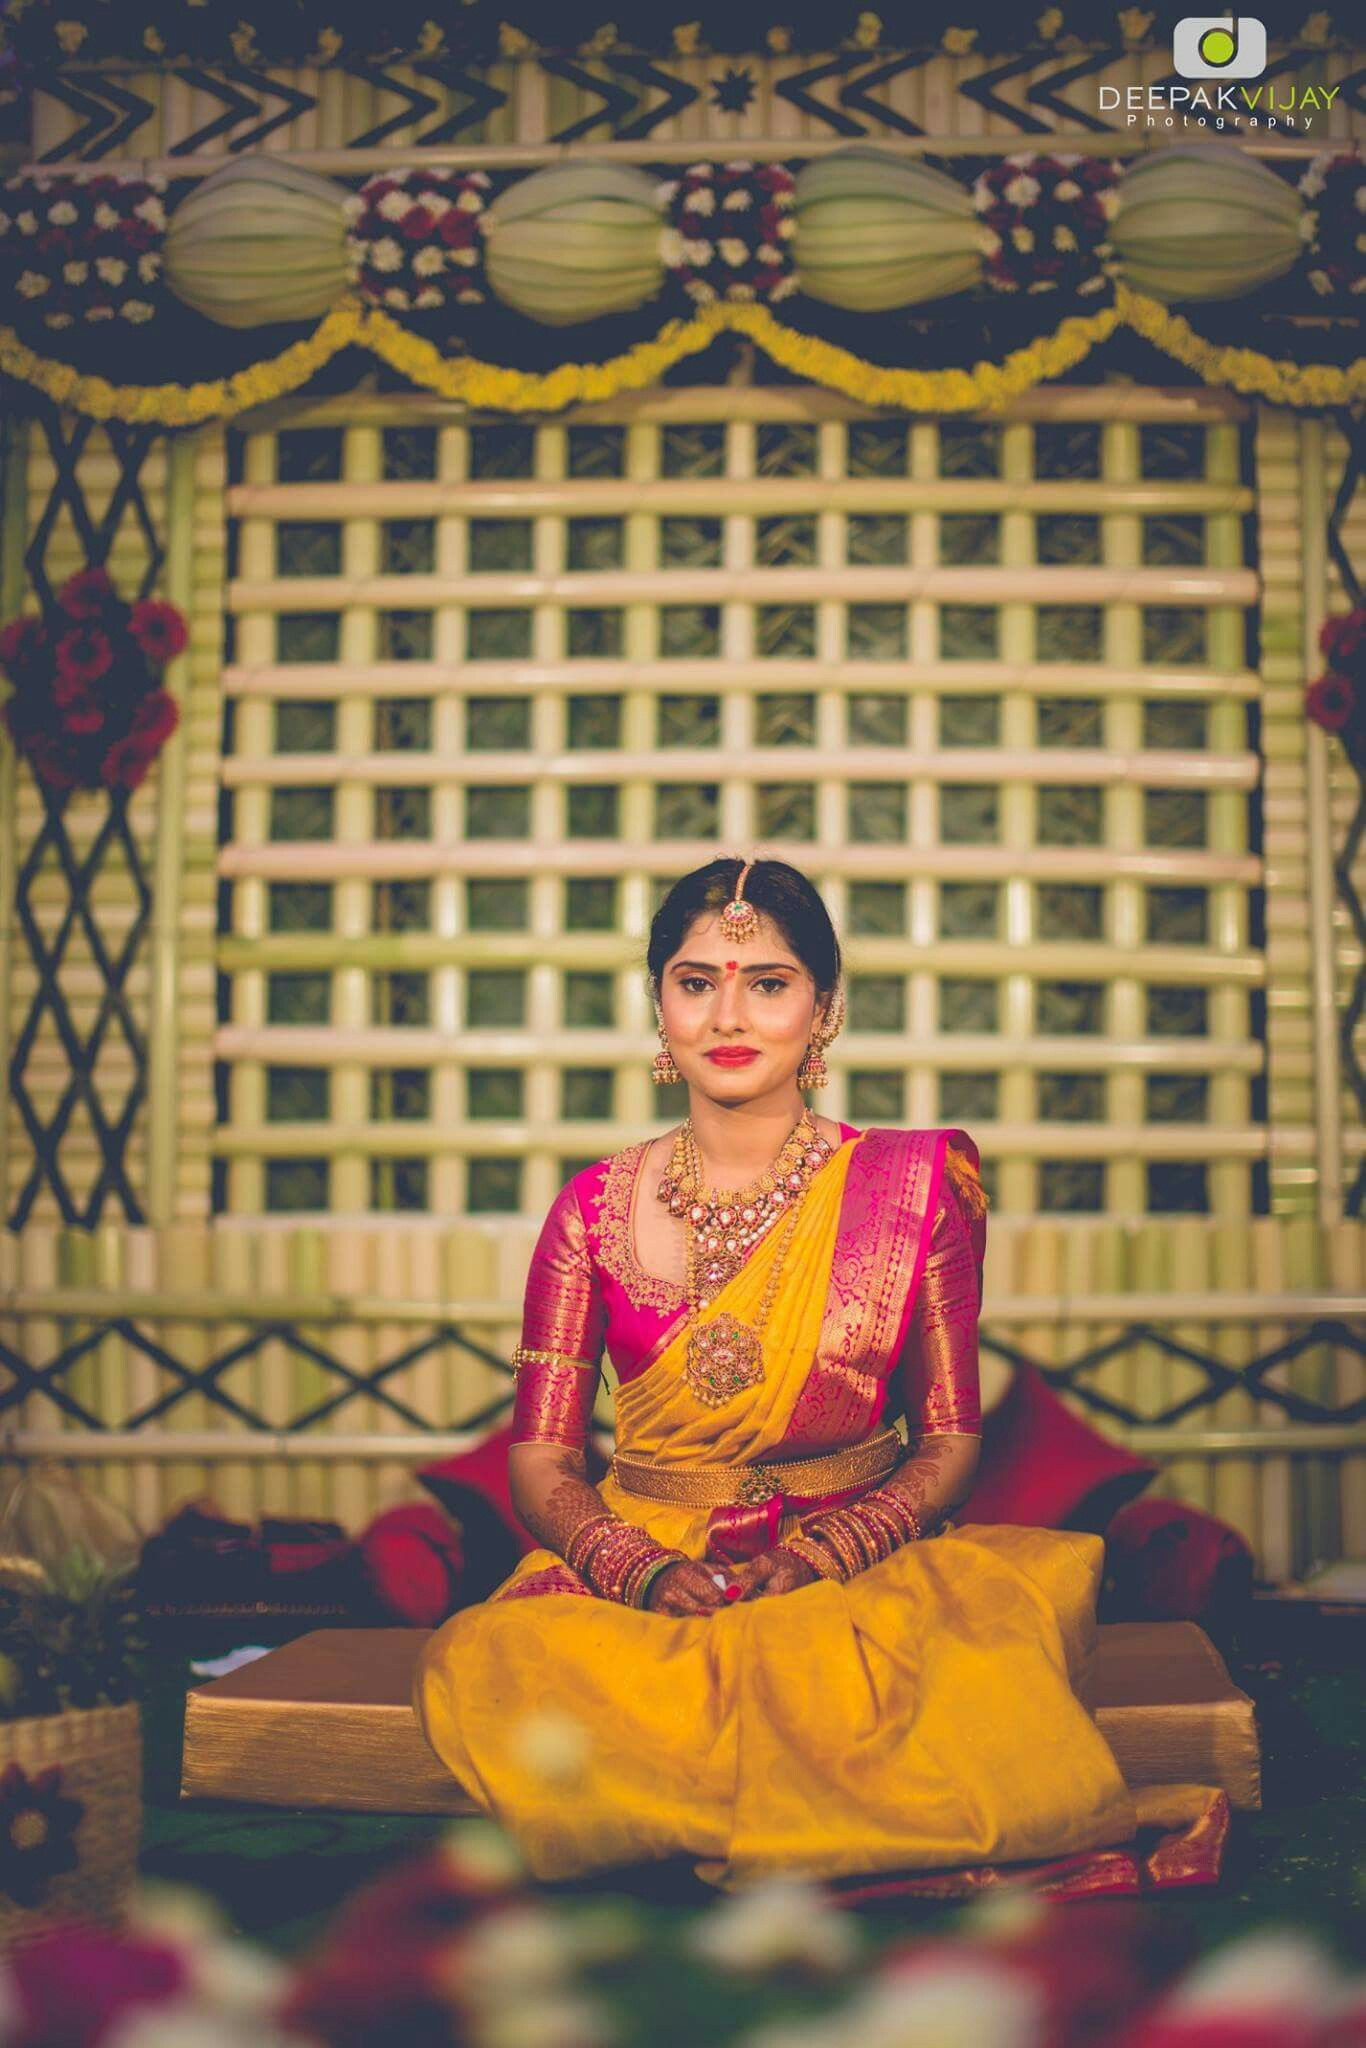 Saree jewellery images pin by shwetha shri on jewellery and dress  pinterest  saree